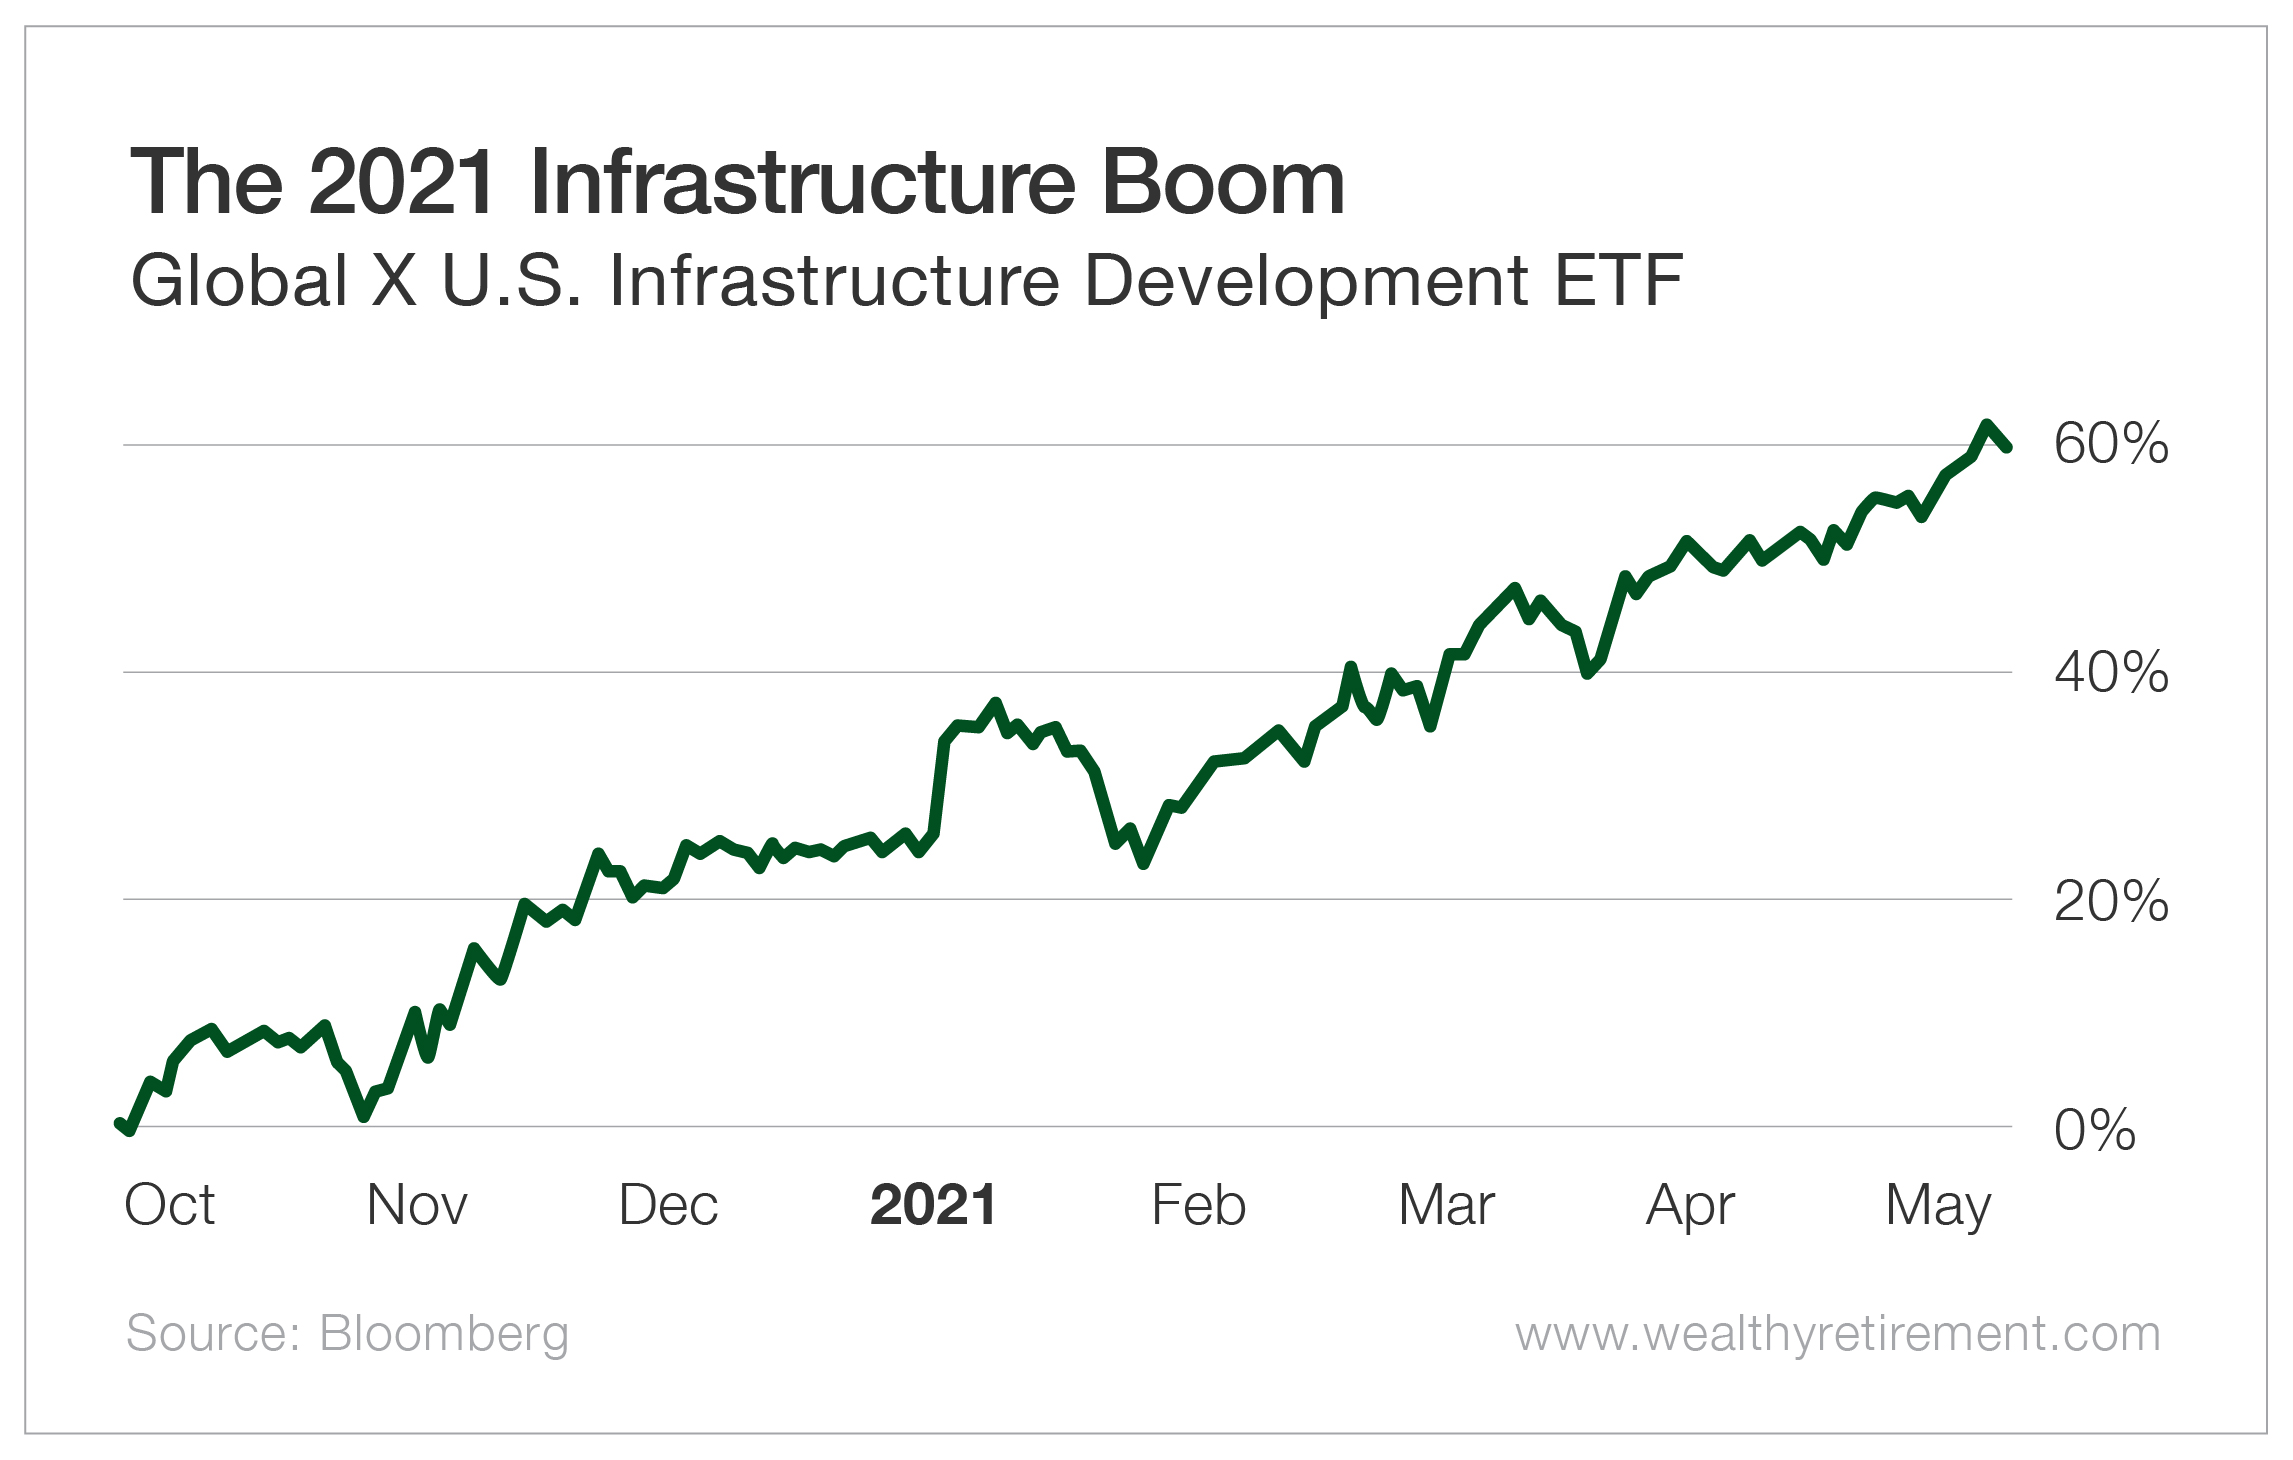 The 2021 Infrastructure Boom